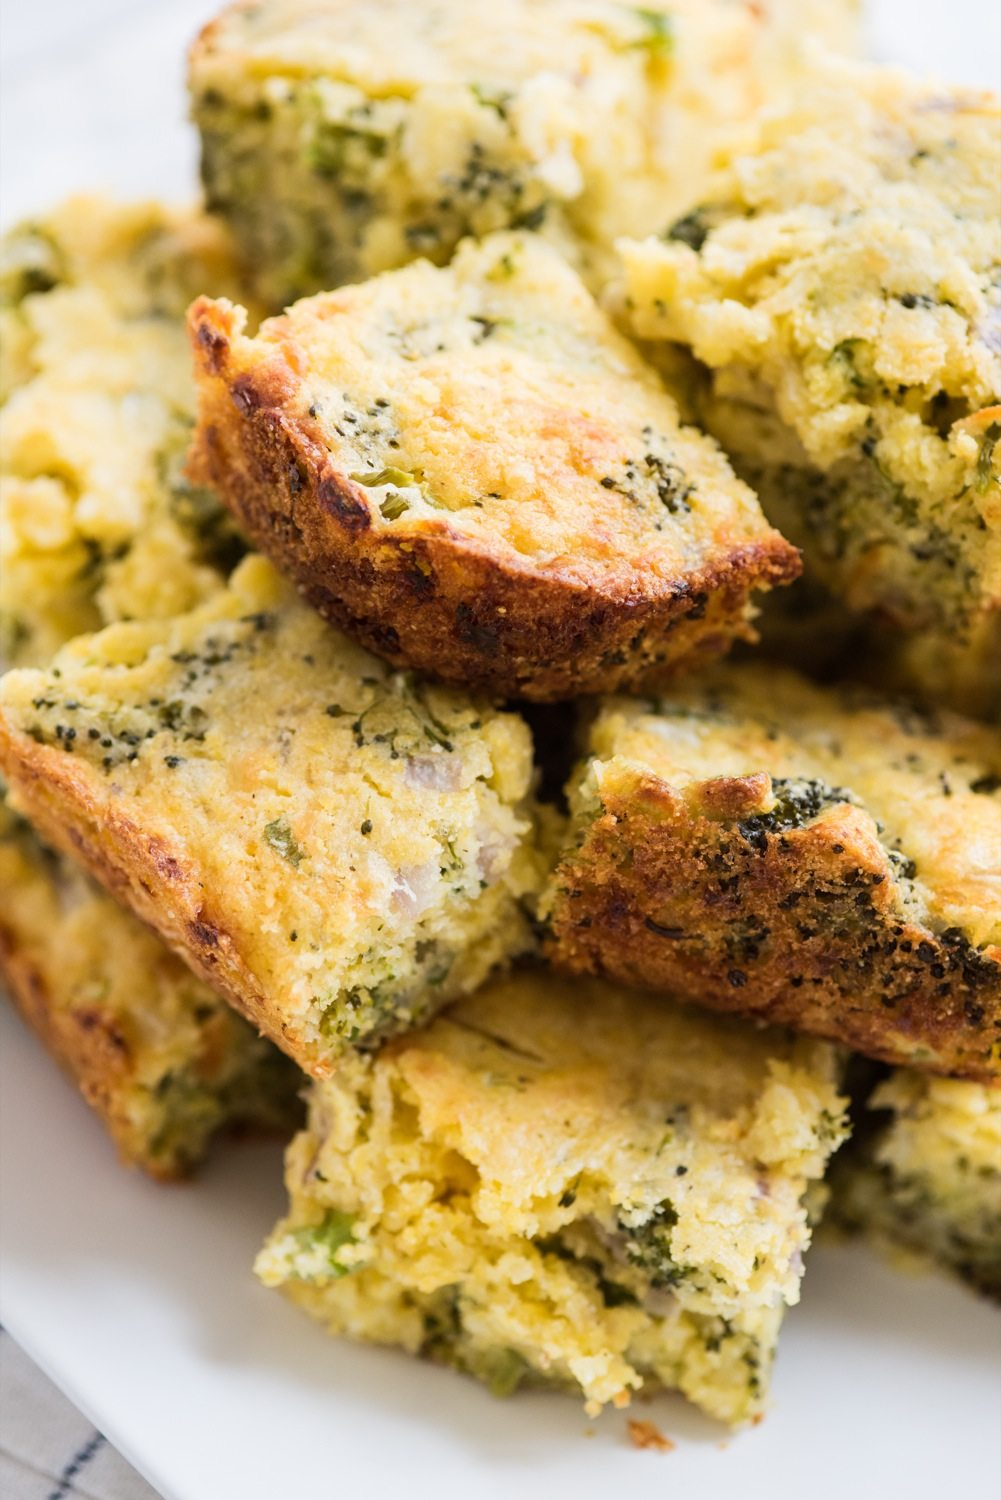 Cheesy Broccoli Cornbread with Jiffy Mix